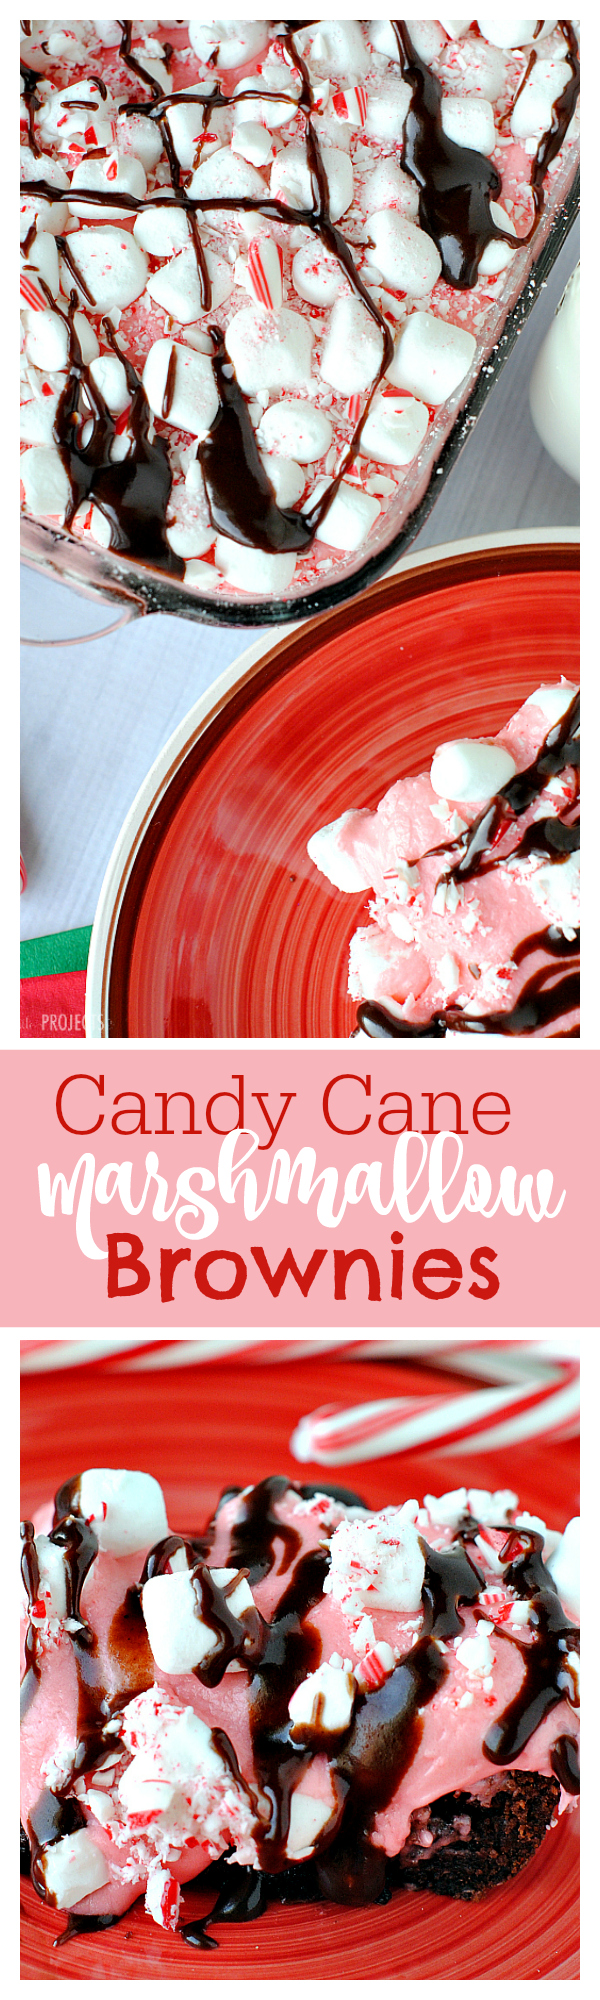 Candy Cane Dessert for Christmas: Peppermint Marshmallow Dream Brownies-So good and so easy to make! A great Christmas treat for a party. #christmas #christmasdessert #dessertrecipes